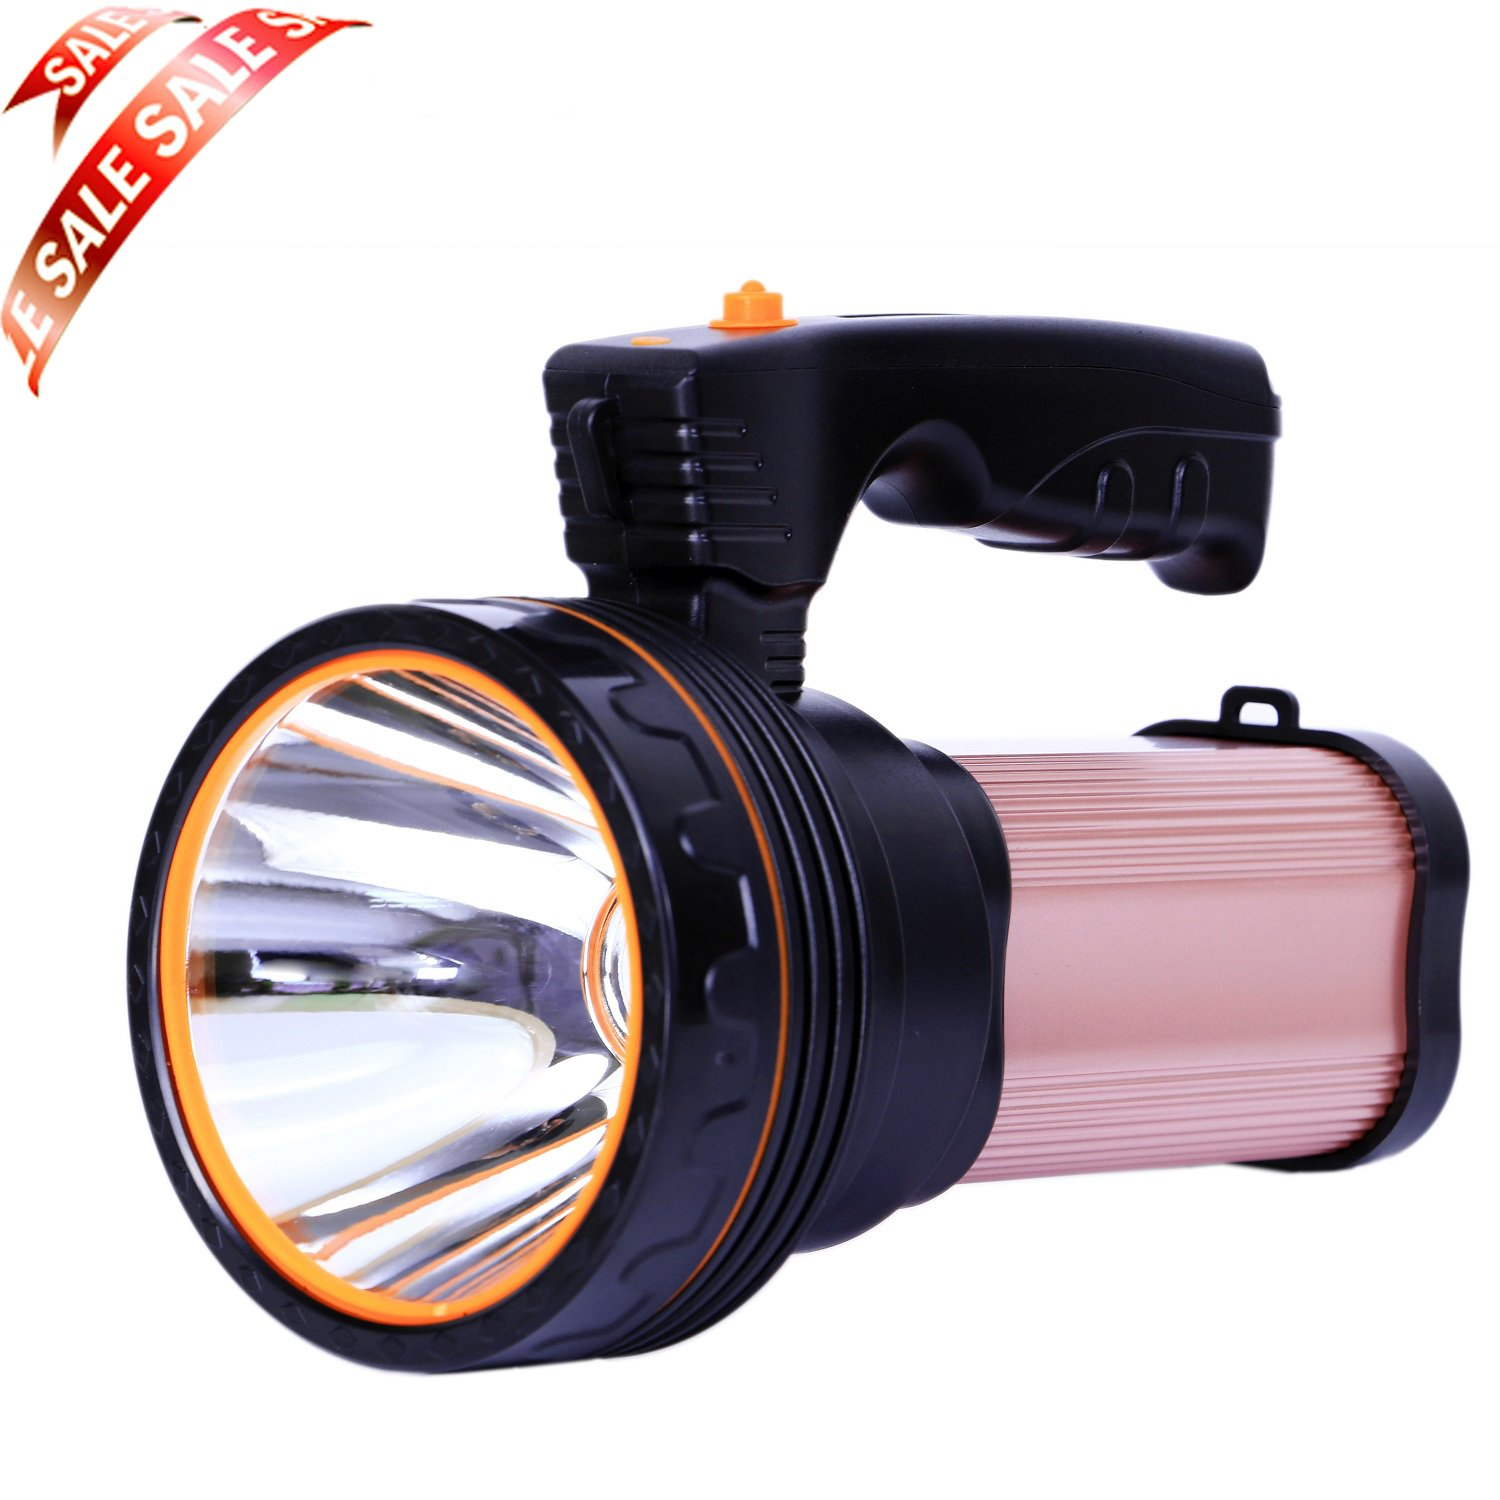 Allflash Searchlight LED Rechargeable Handheld Searchlight Hi High-power Super Bright 9000 MA 6000 LUMENS CREE Tactical Spotlight Torch Lantern Flashlight (Brown)